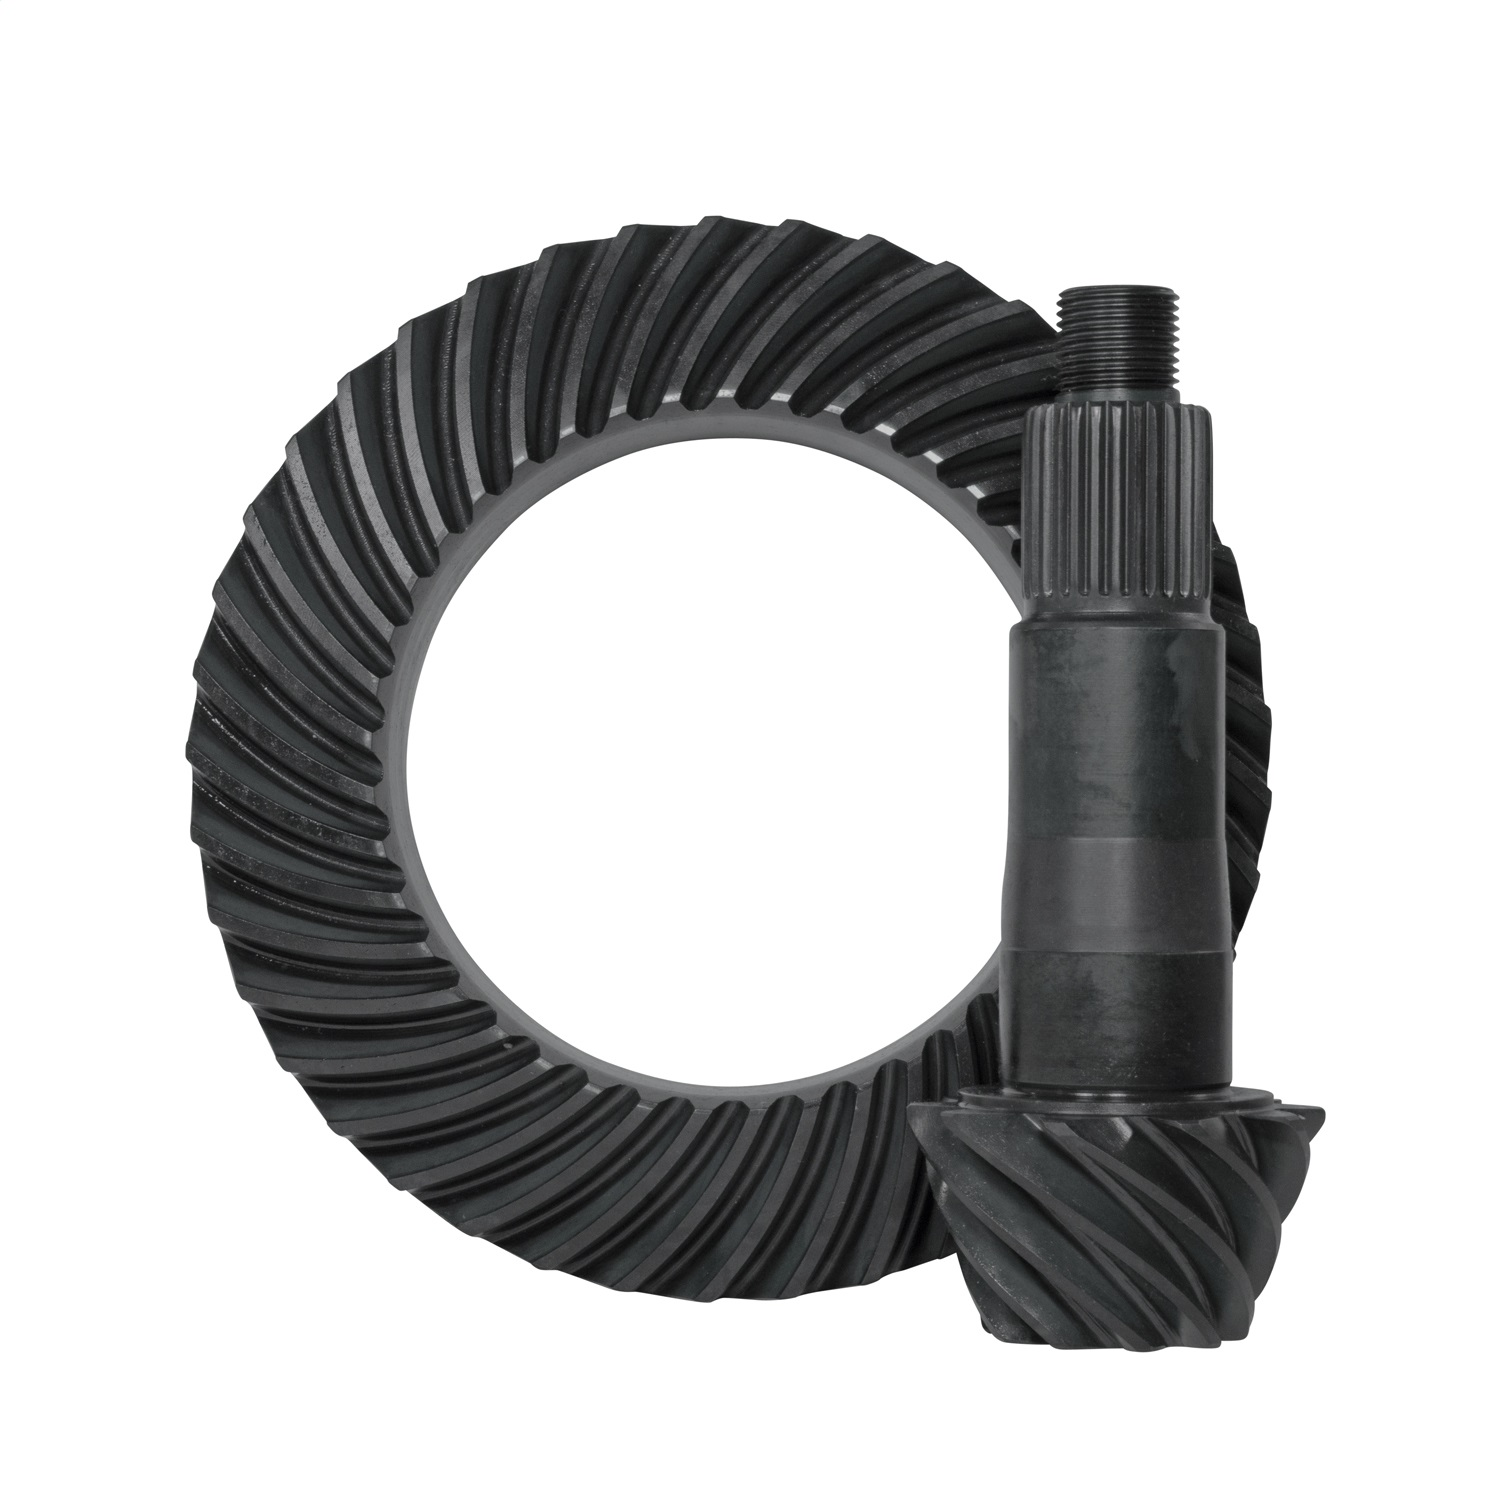 Yukon Gear & Axle YG D44JL-411 Differential Ring and Pinion Fits Wrangler (JL)